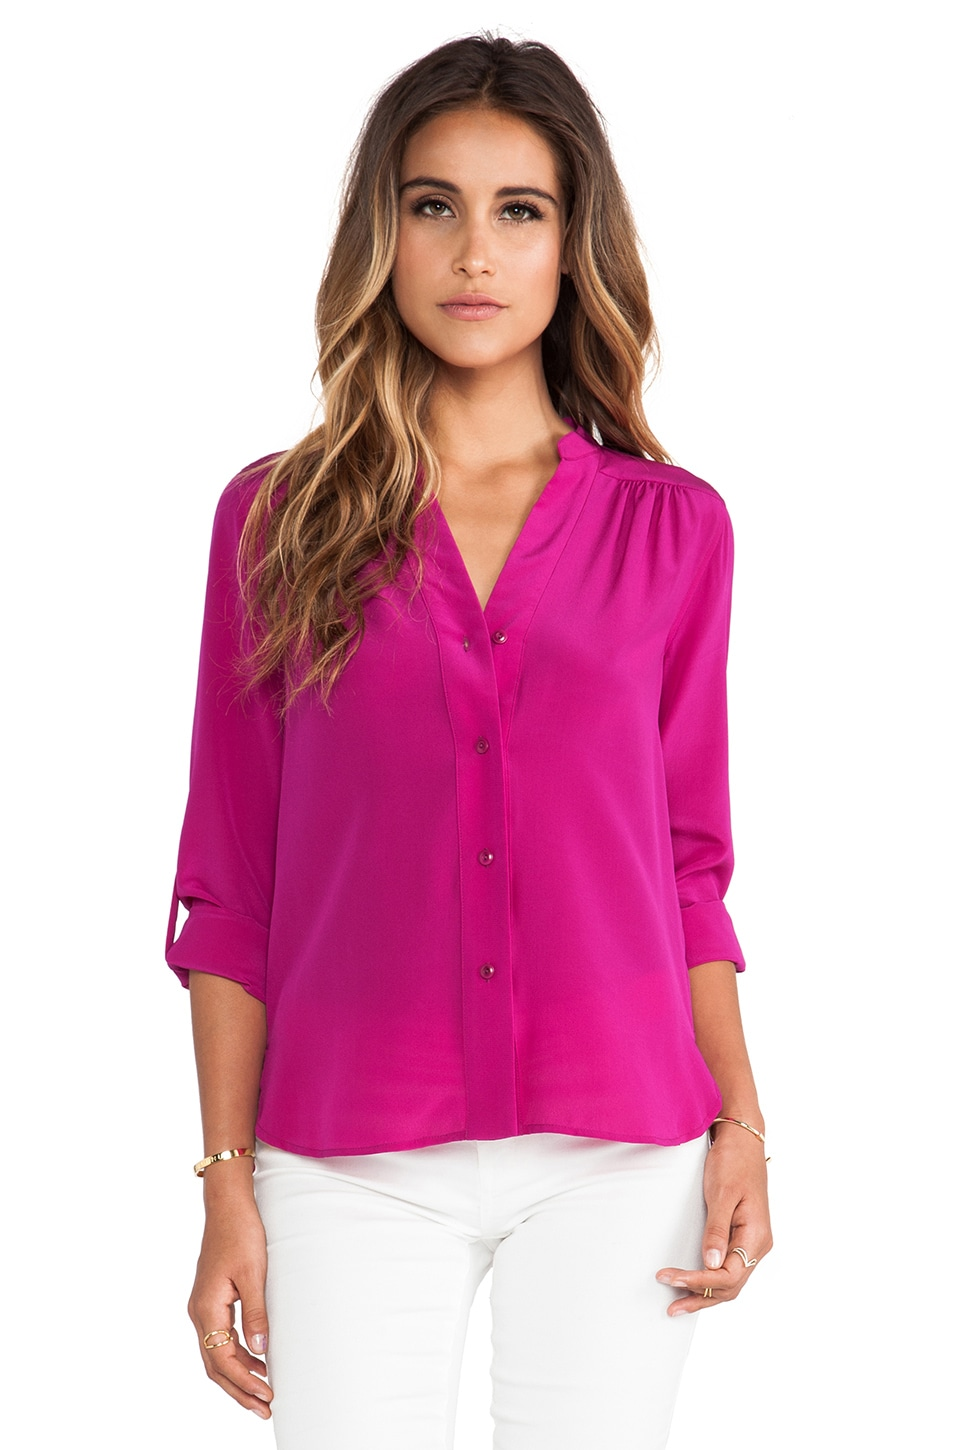 Diane von Furstenberg Harlow Blouse in Lotus Berry